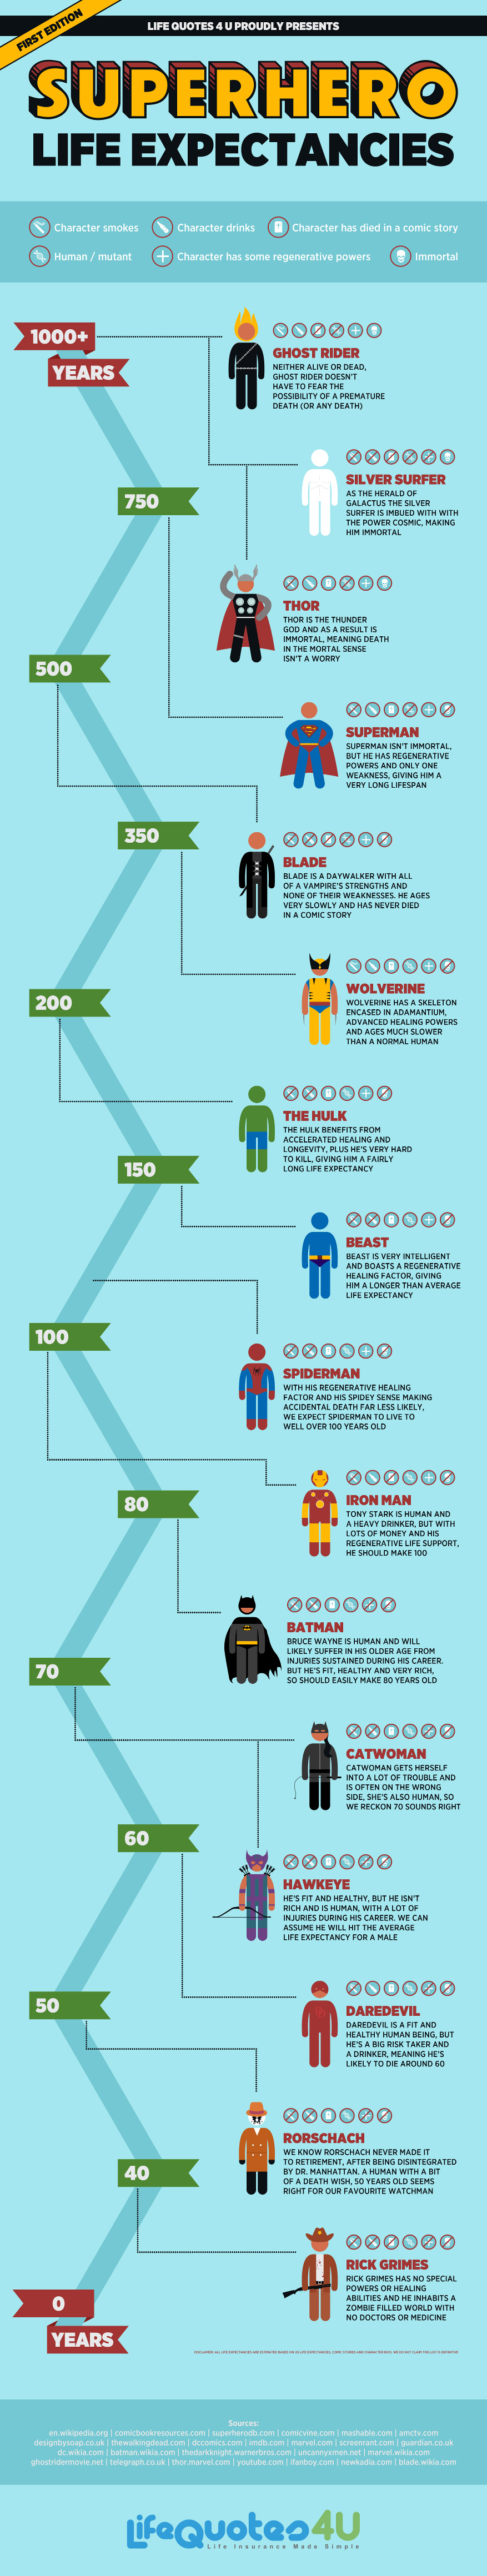 The Life Expectancies of Superheroes (Part 1)